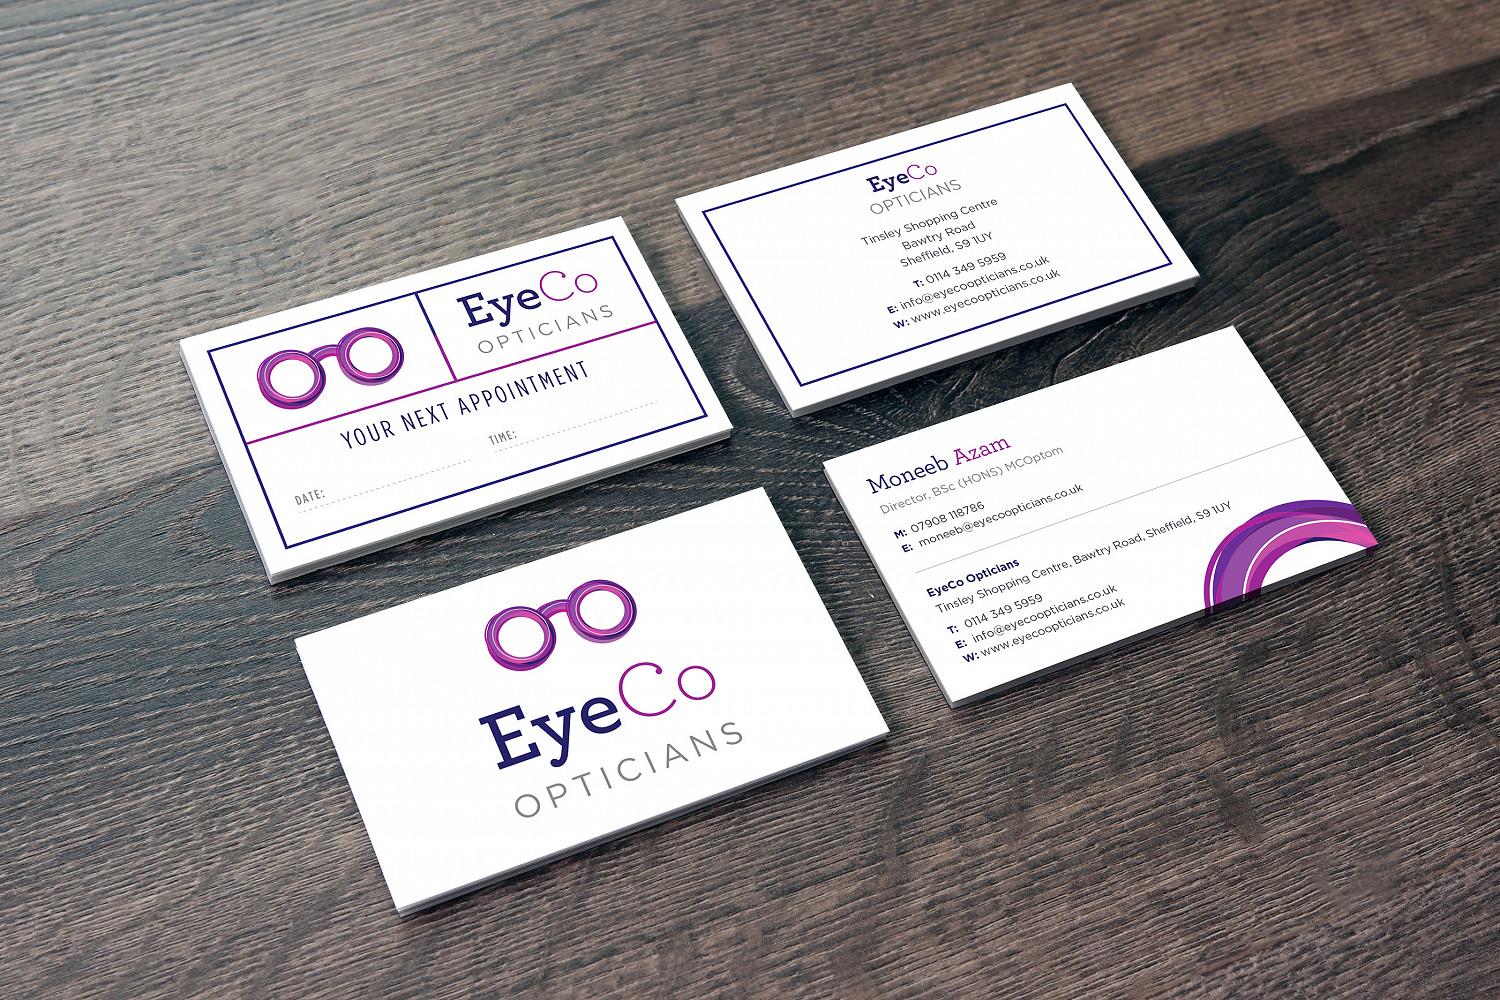 Eyeco Appt Card and Business Card